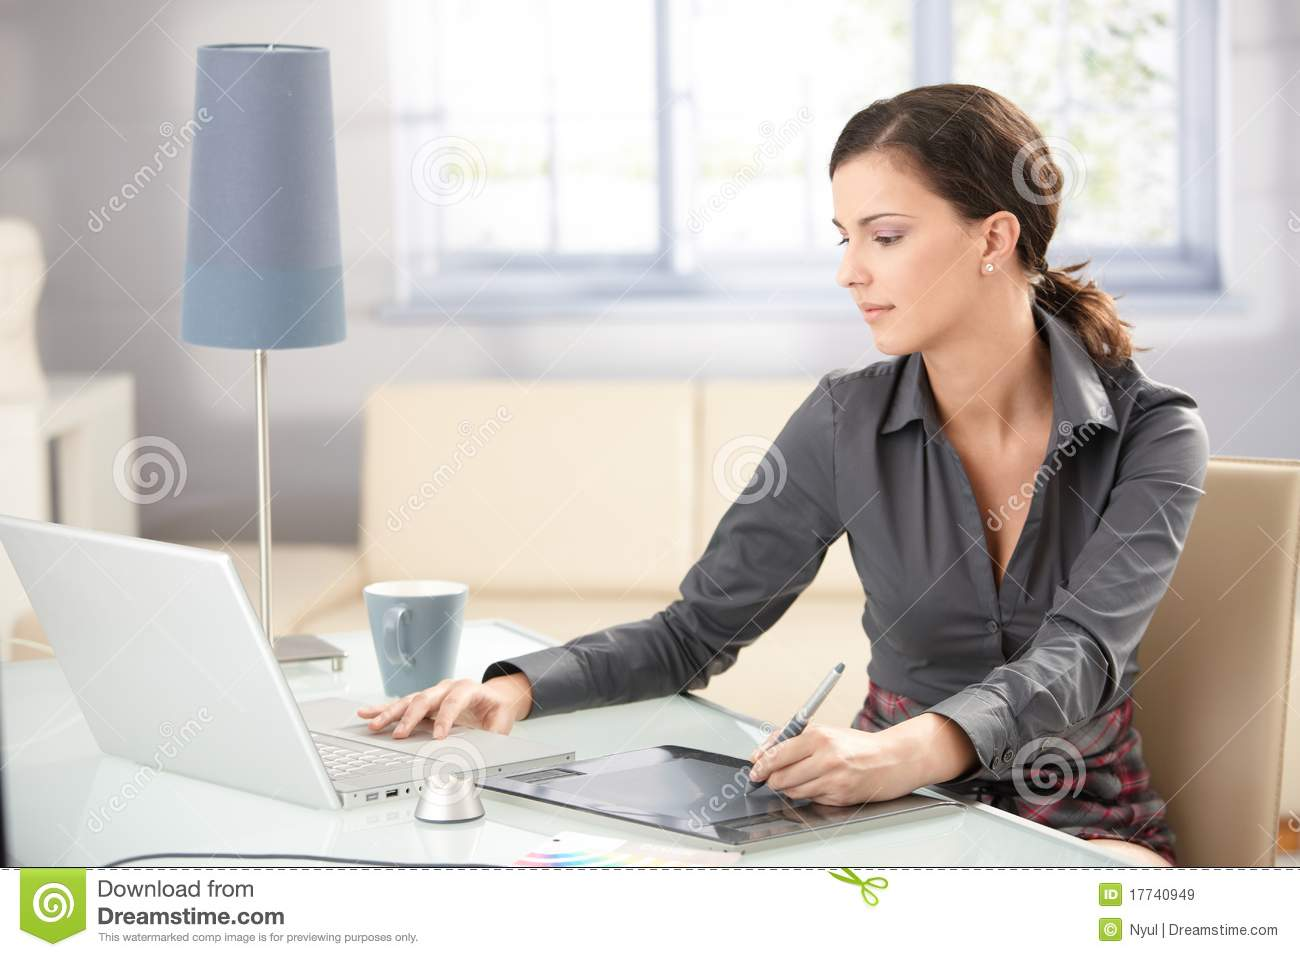 Young Graphic Designer Working At Home Stock Photo 17740949 - Megapixl